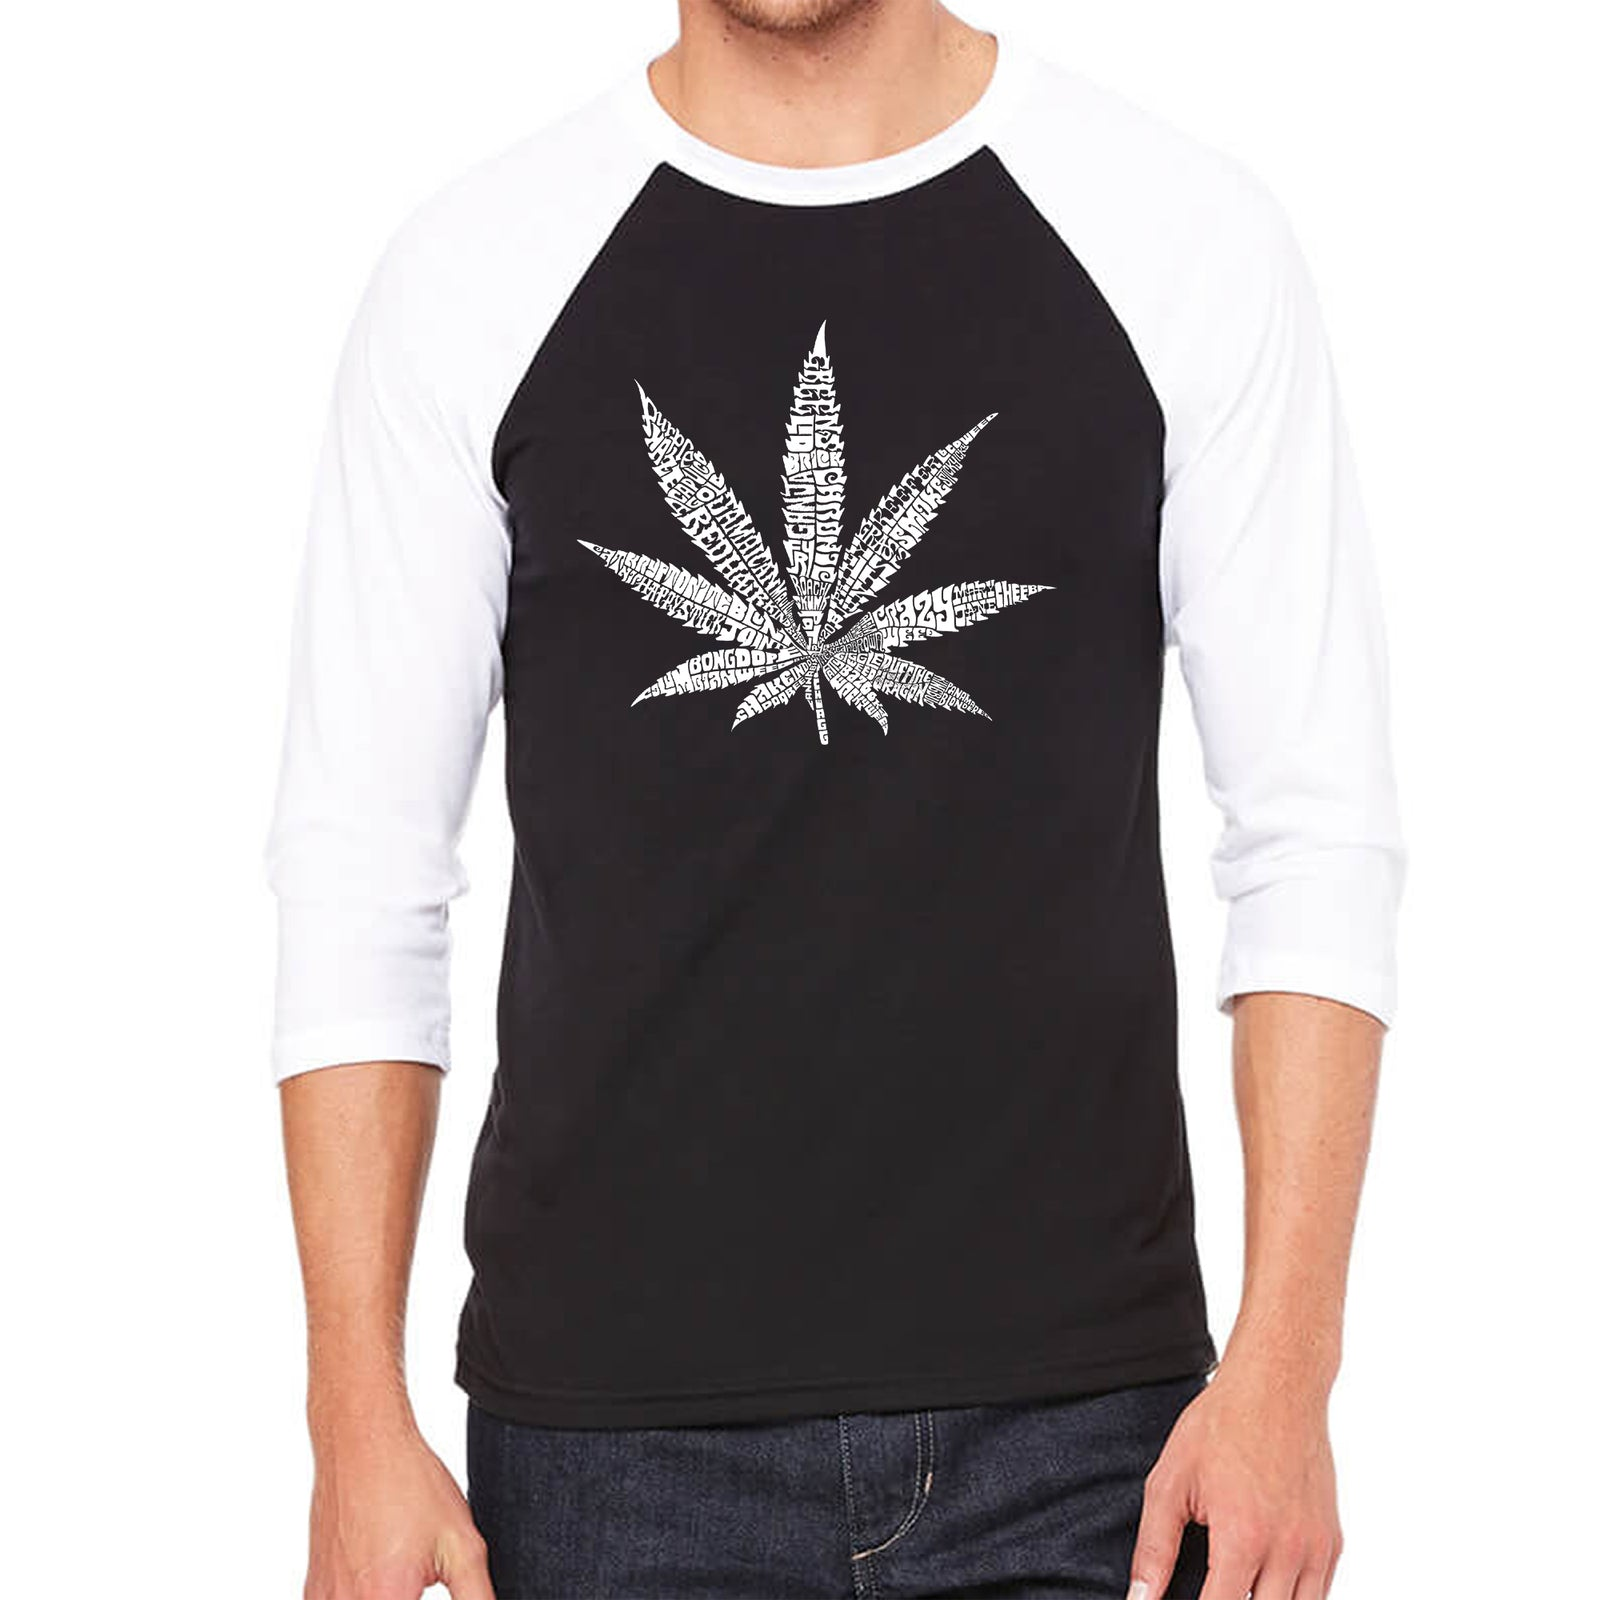 Men's Raglan Baseball Word Art T-shirt - 50 DIFFERENT STREET TERMS FOR MARIJUANA